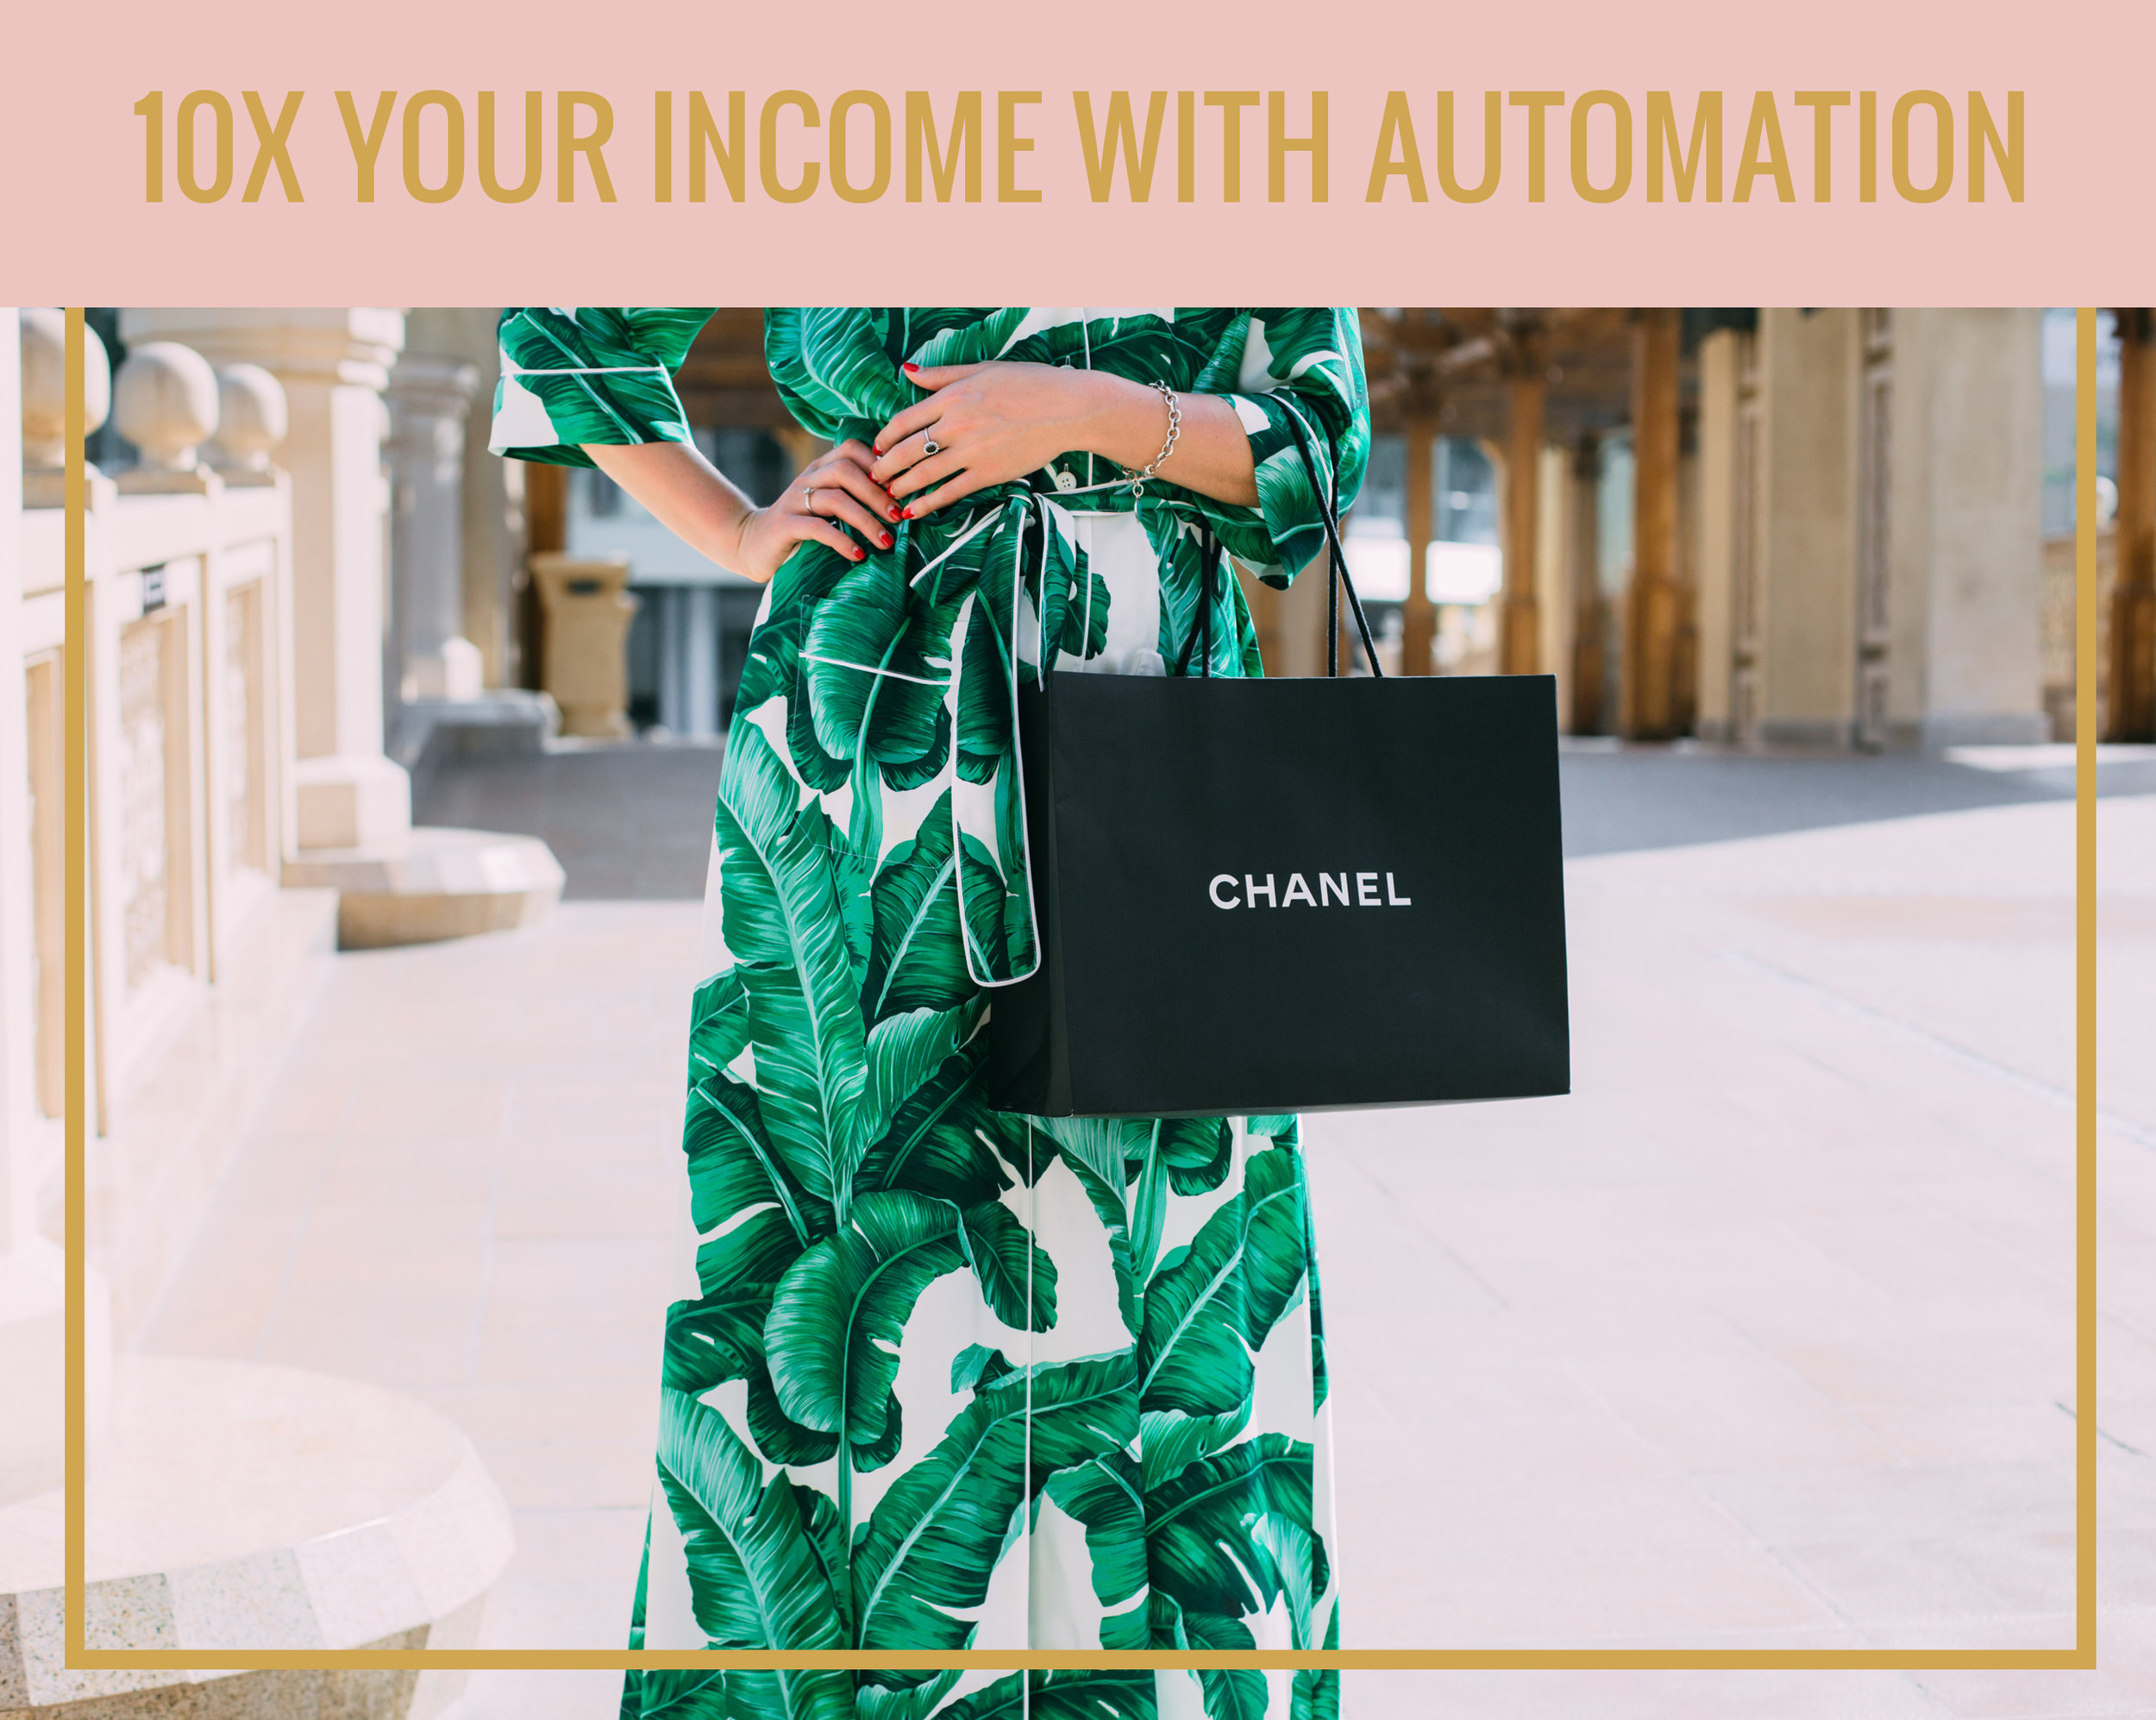 10X-YOUR-INCOME-WITH-AUTOMATION (3).jpg